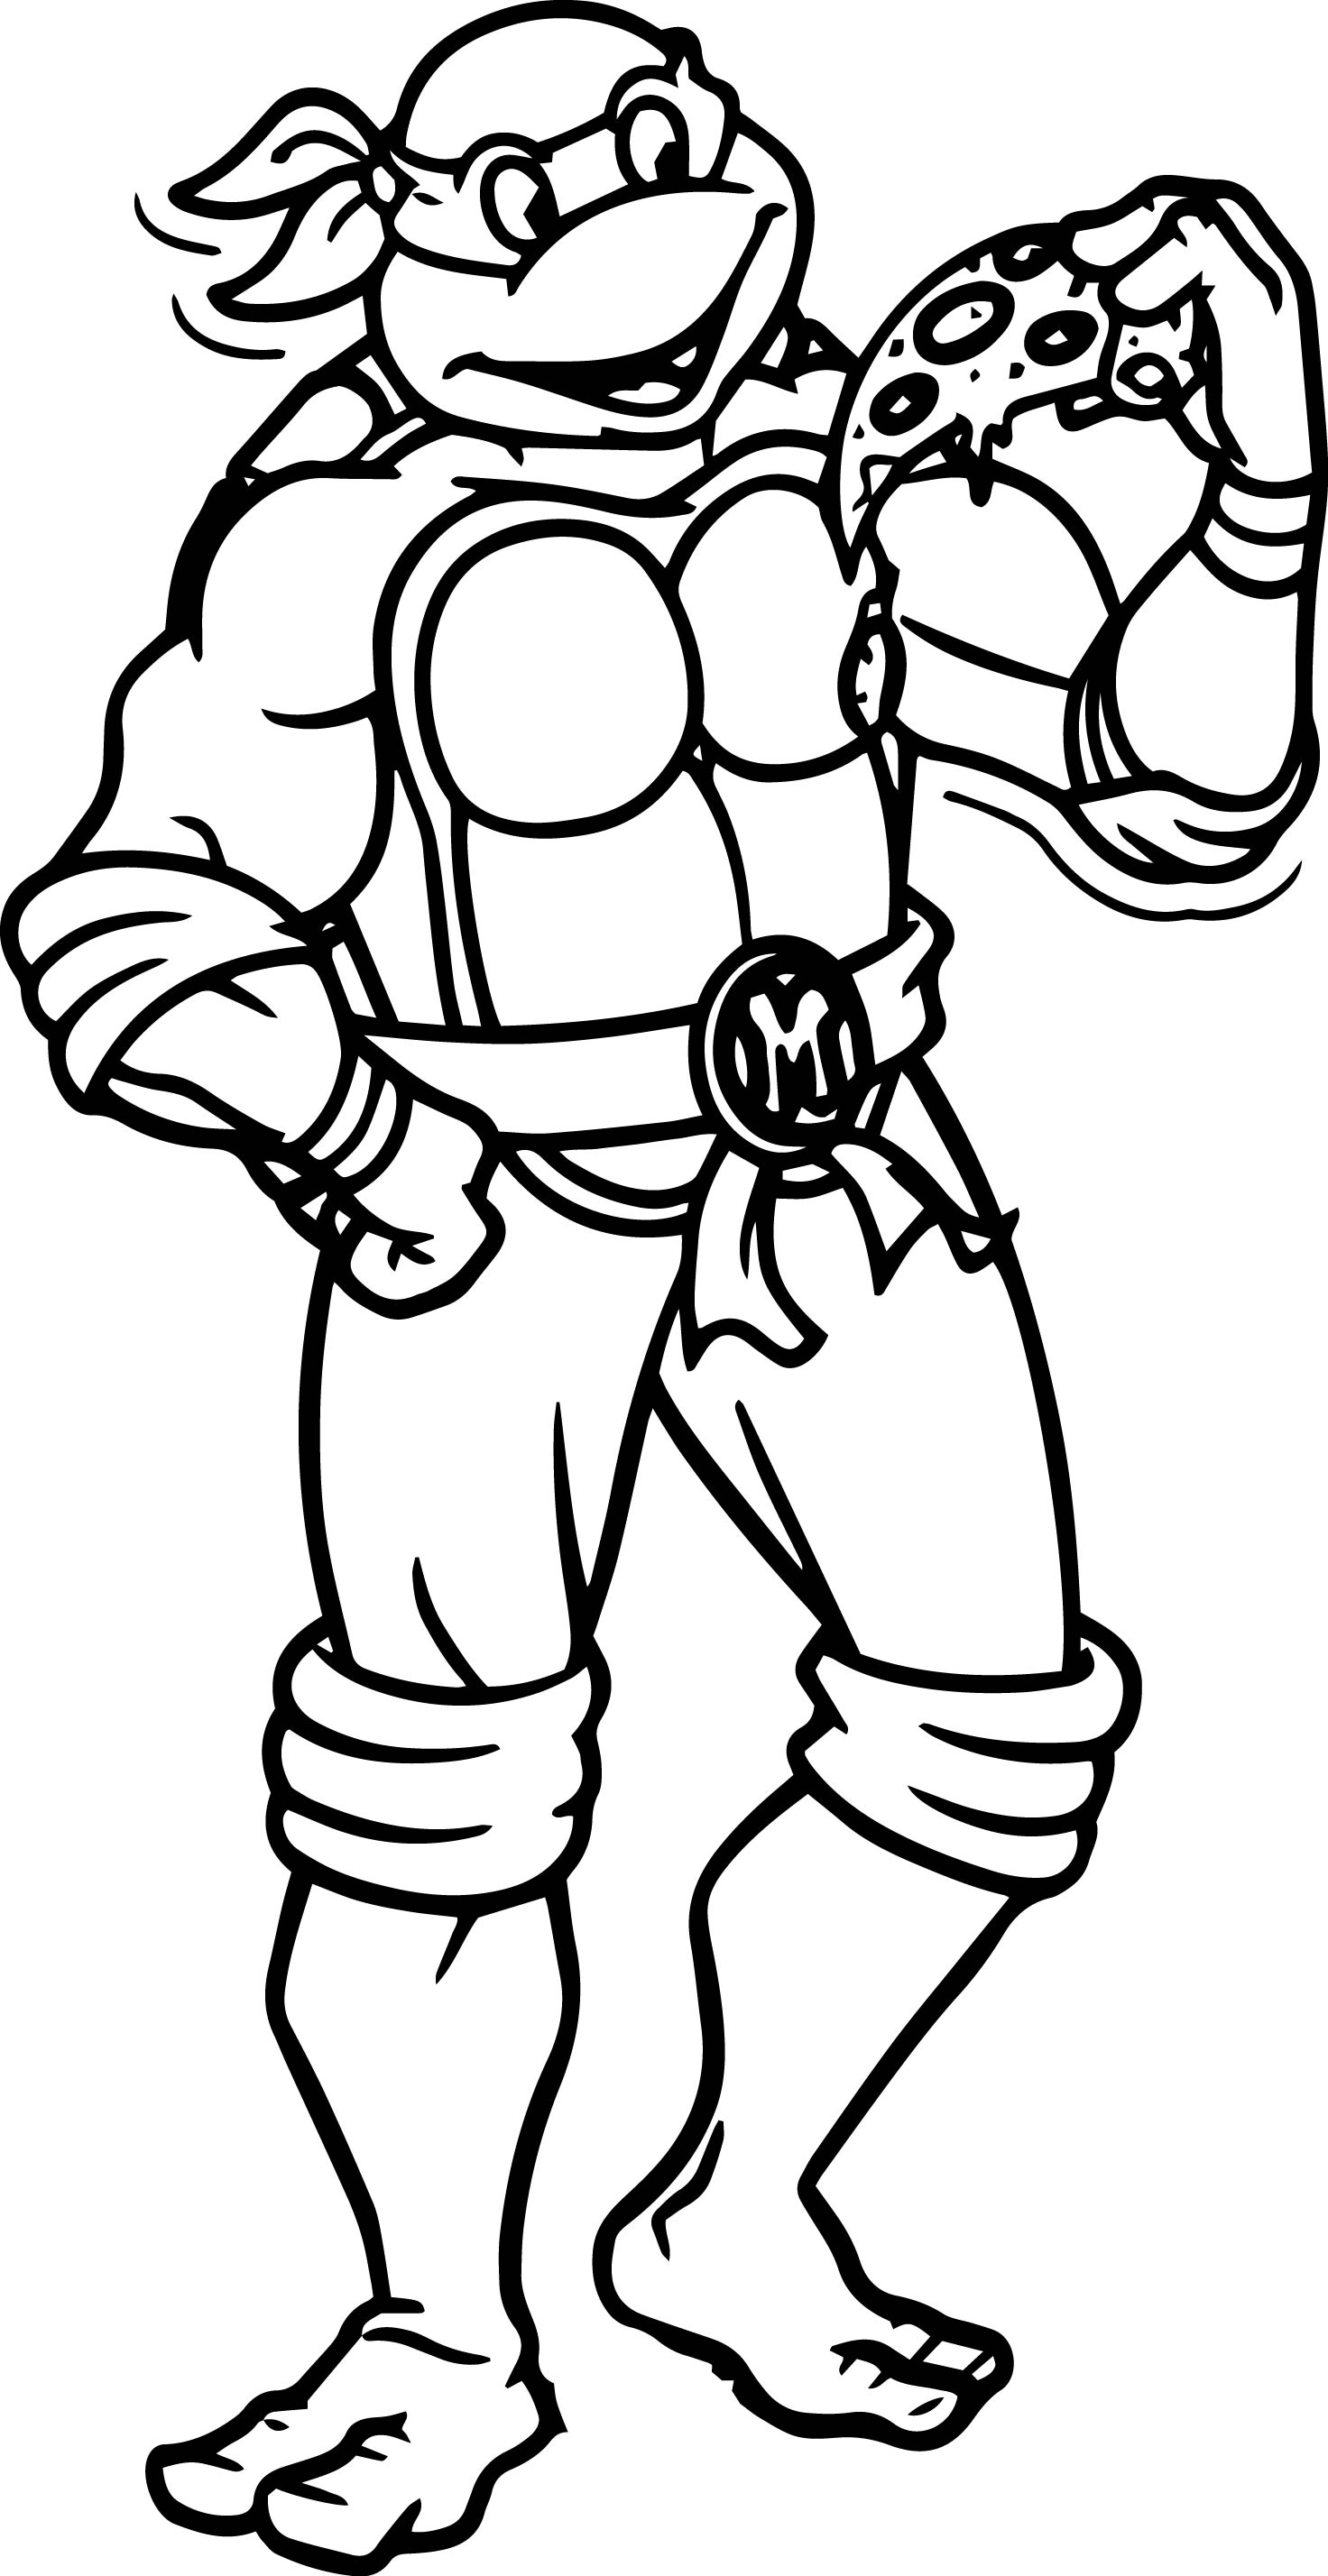 ninja turtle cartoon coloring pages wecoloringpage rh wecoloringpage com ninja turtles 2012 raphael coloring page teenage mutant ninja turtles coloring - Tmnt Coloring Pages